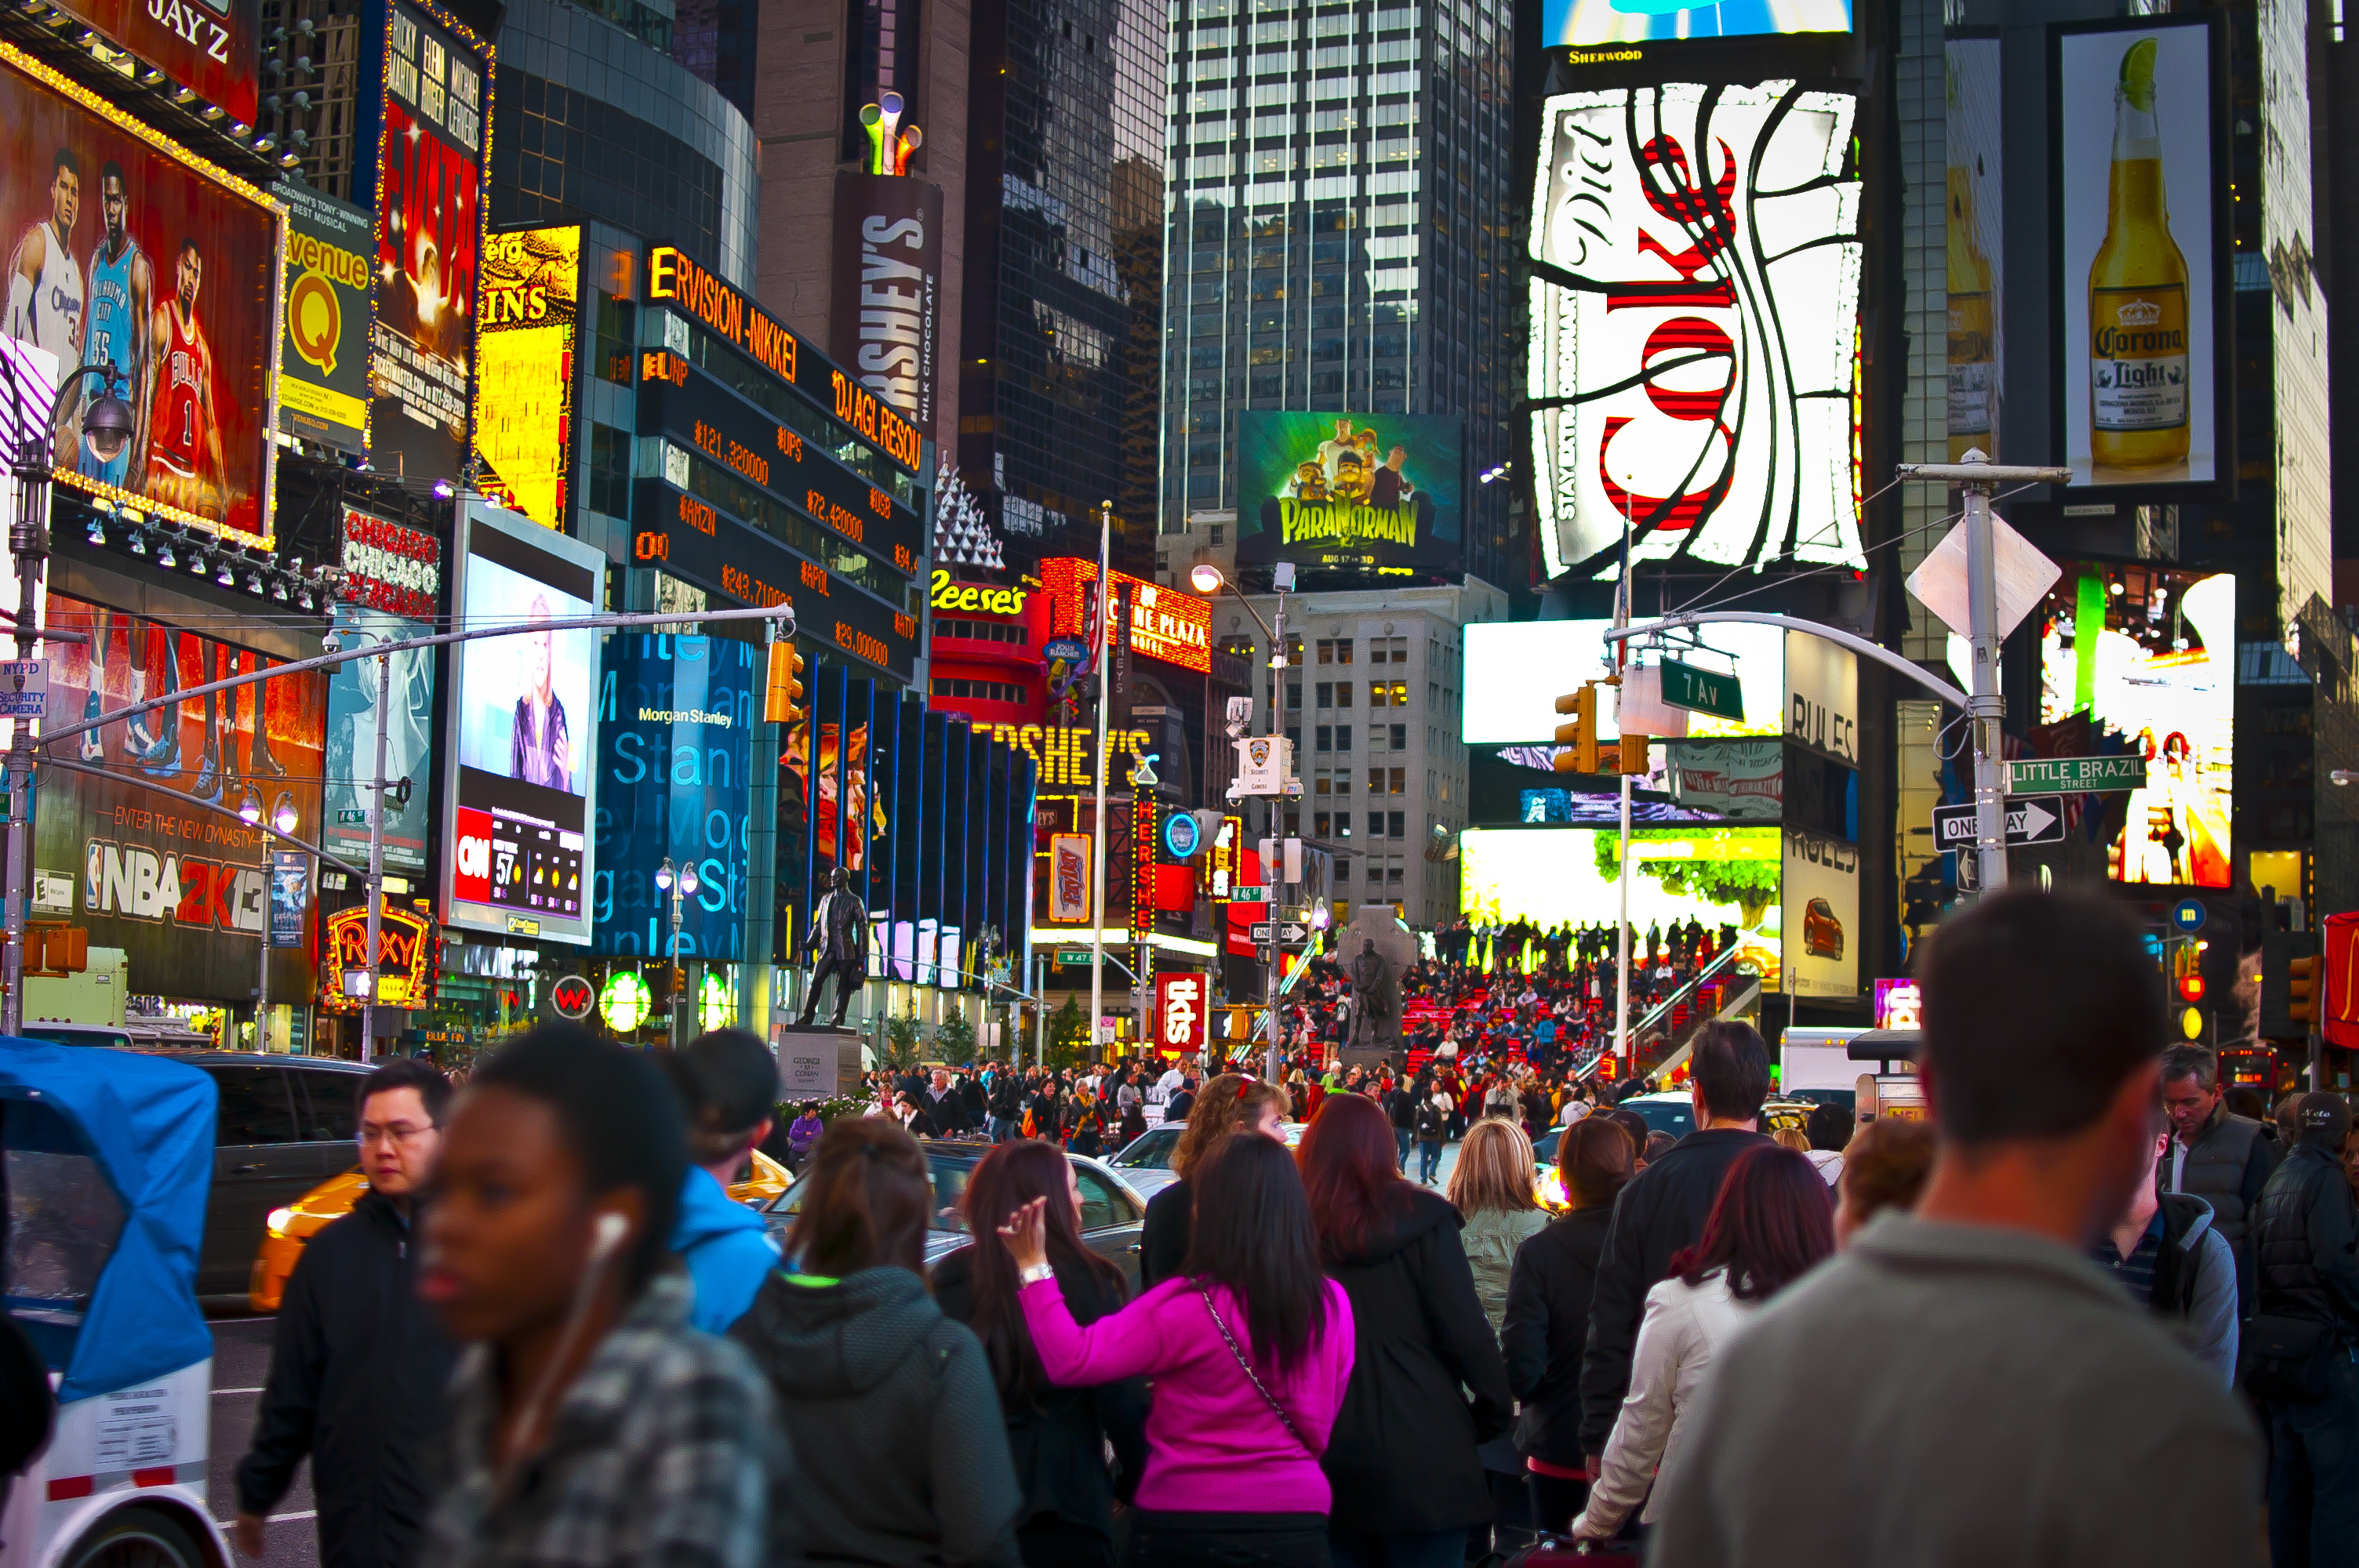 How Much Of A New Yorker Are You? Take this quiz and find out today!